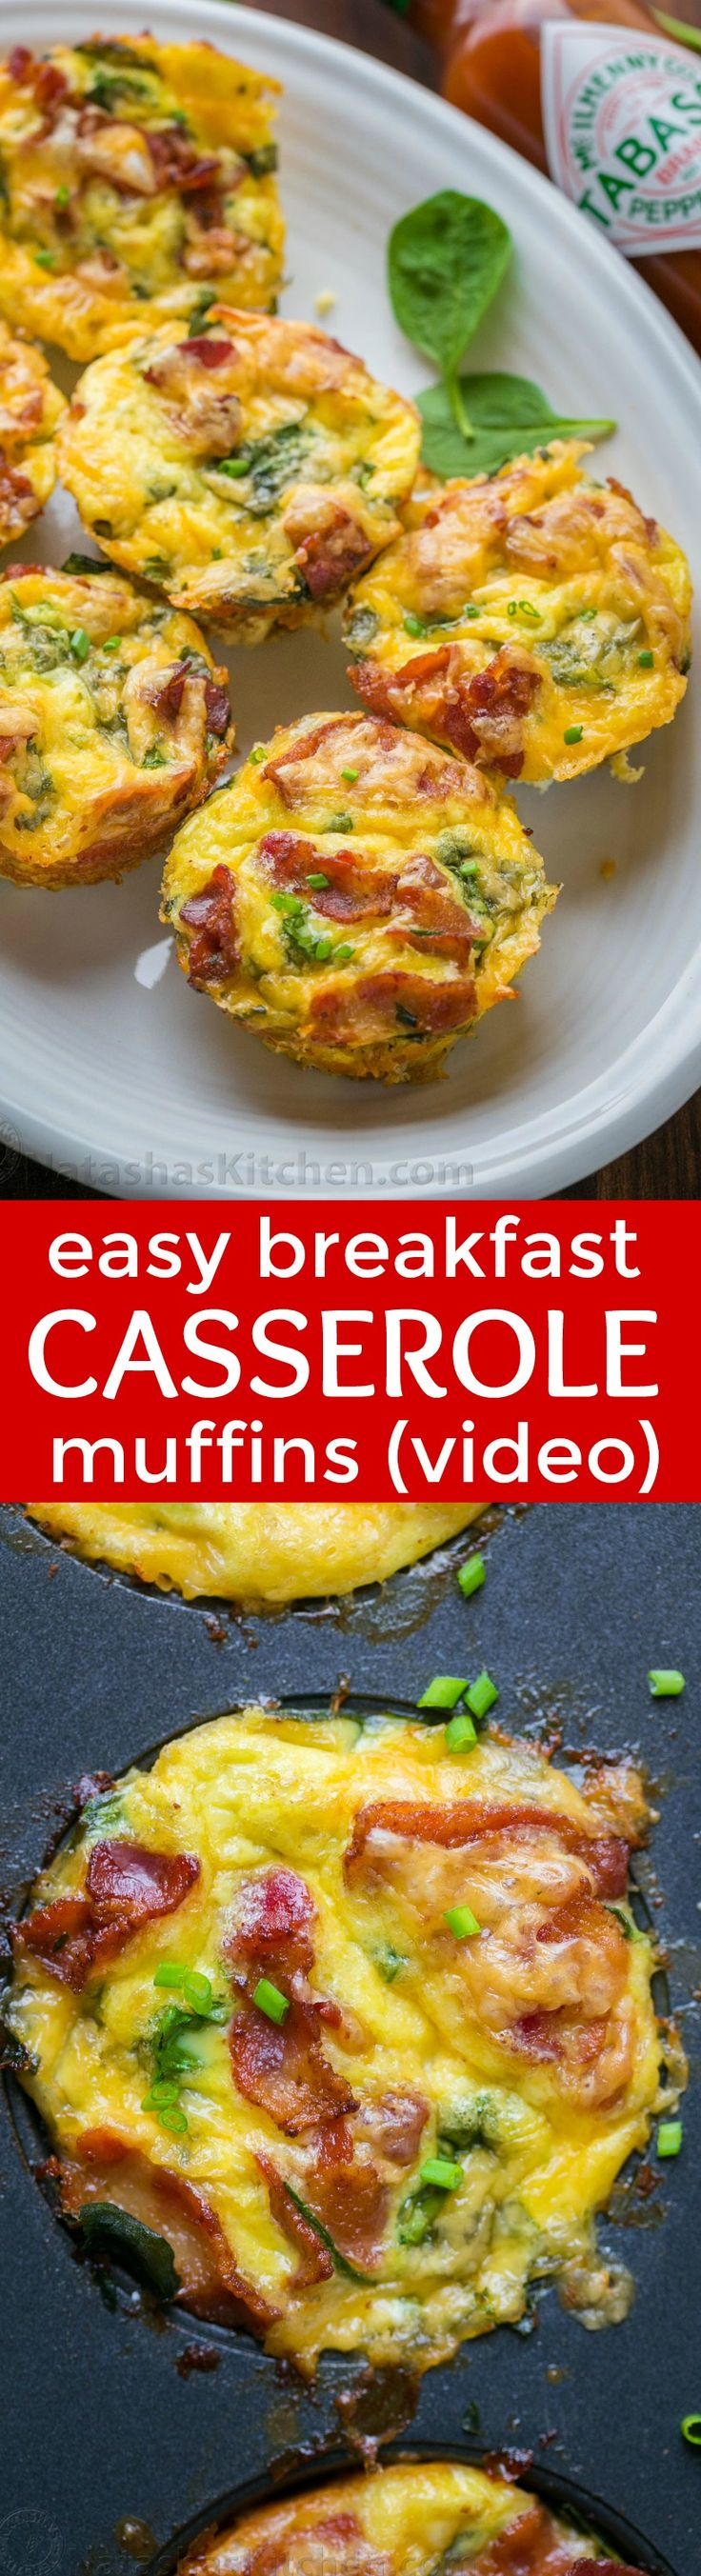 """Breakfast casserole muffins come together quickly. Loaded with potato, spinach, eggs, cheese and crisp bacon. Freezer friendly make-ahead breakfast muffins! 